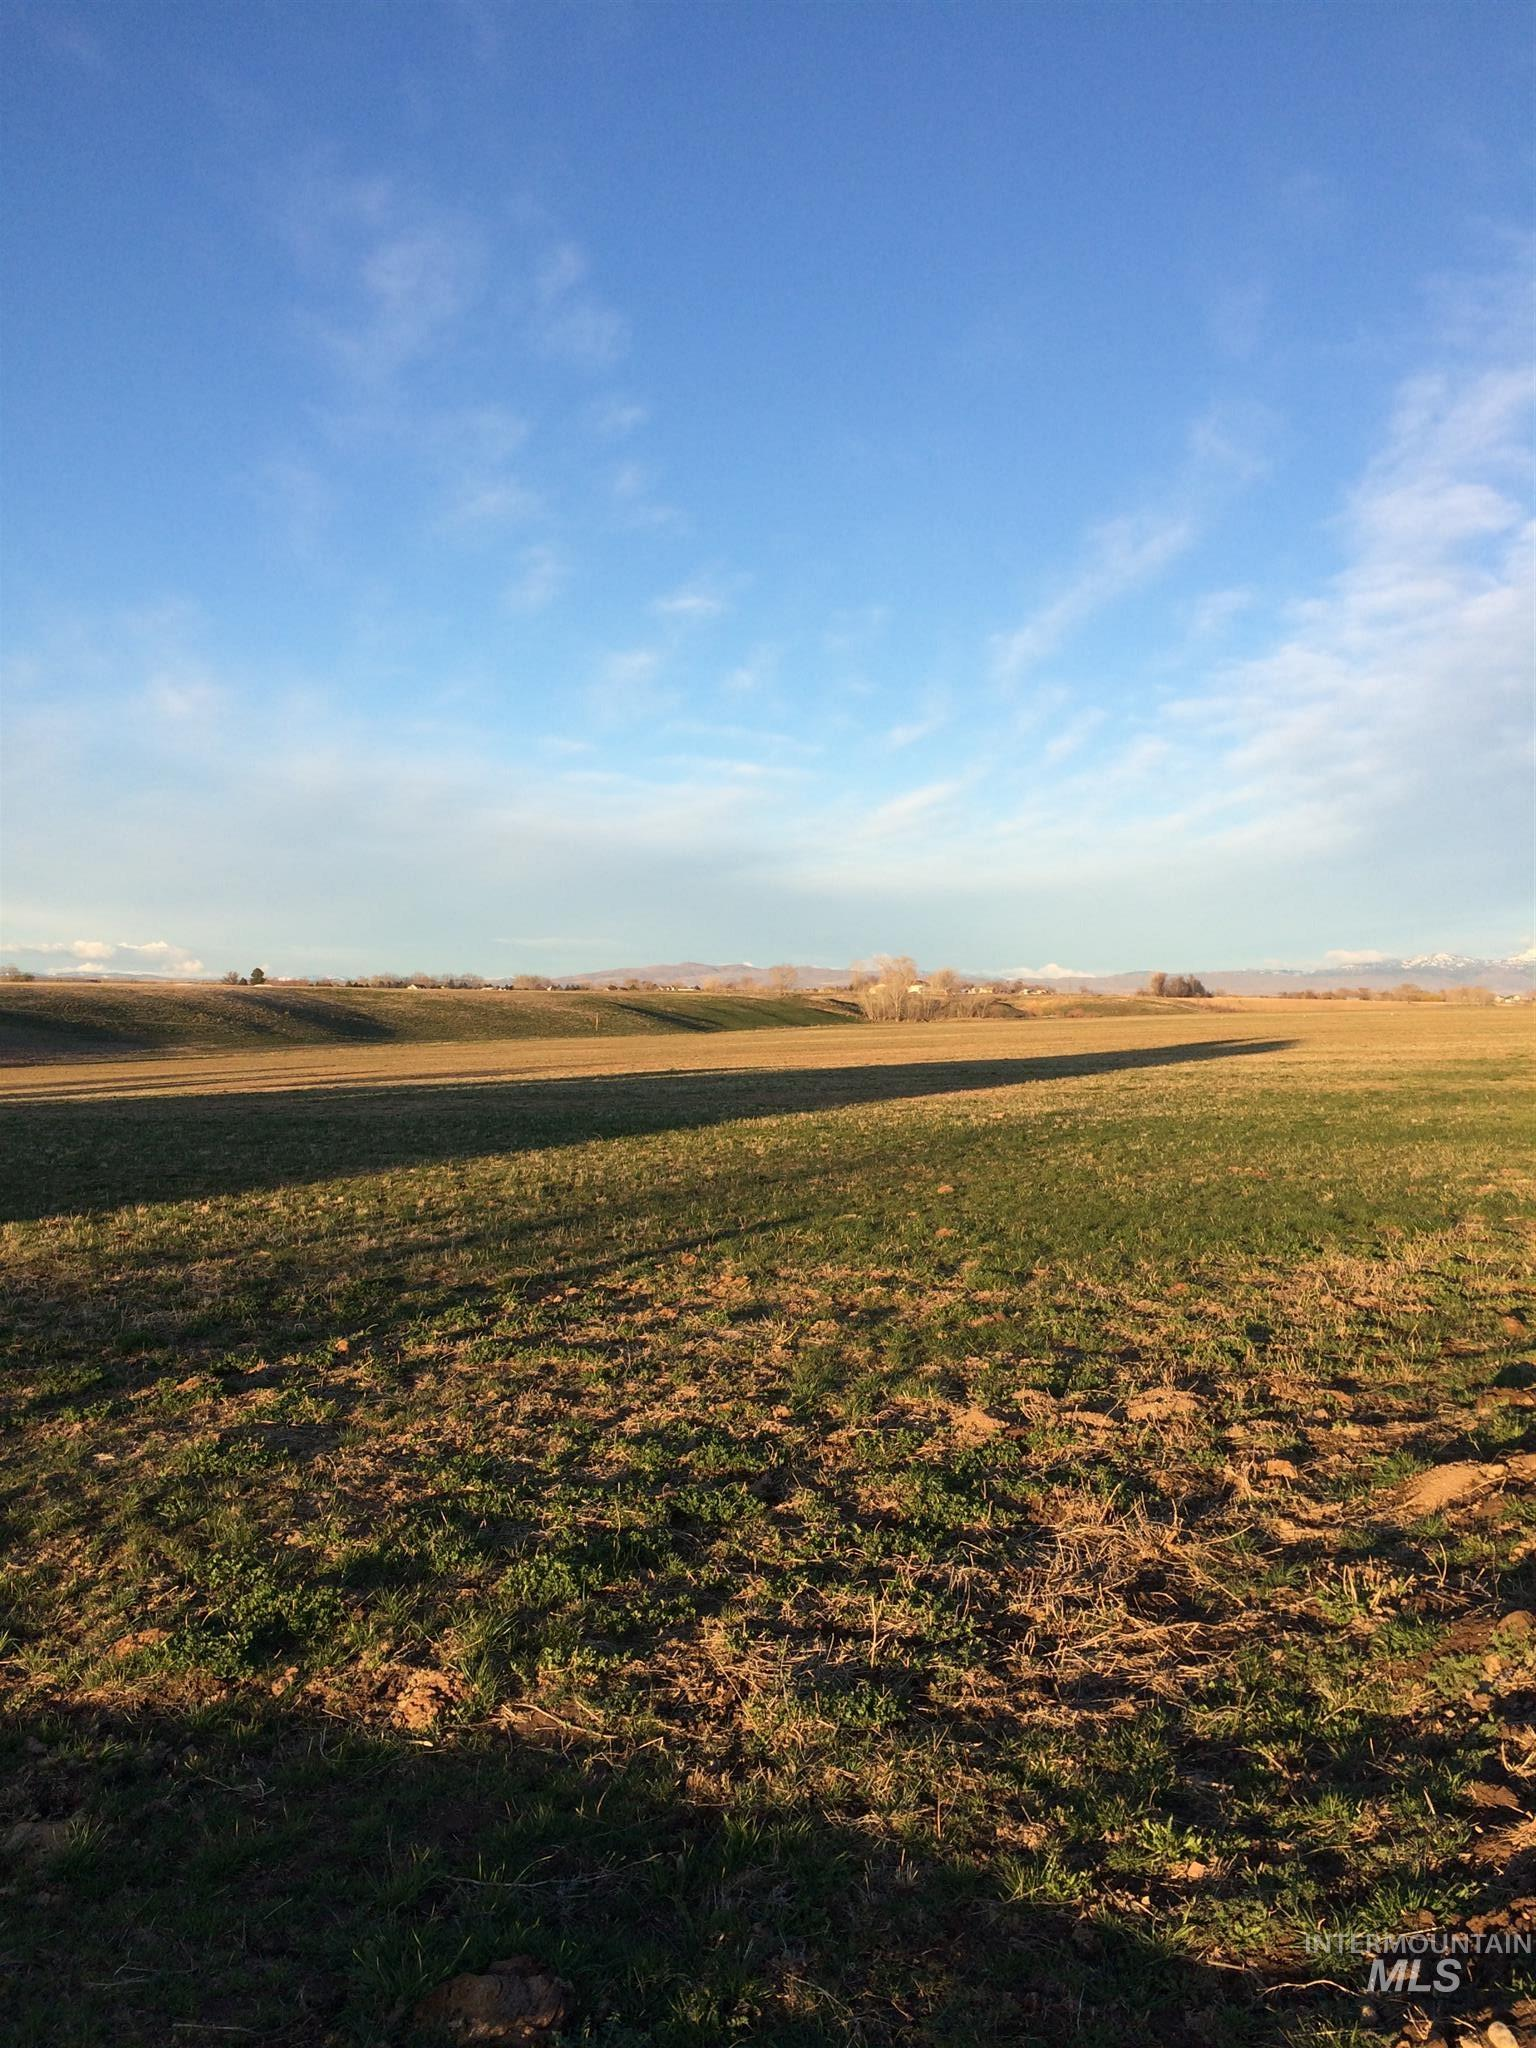 tbd Duff Ln, Middleton, Idaho 83644, Land For Sale, Price $650,000, 98767443